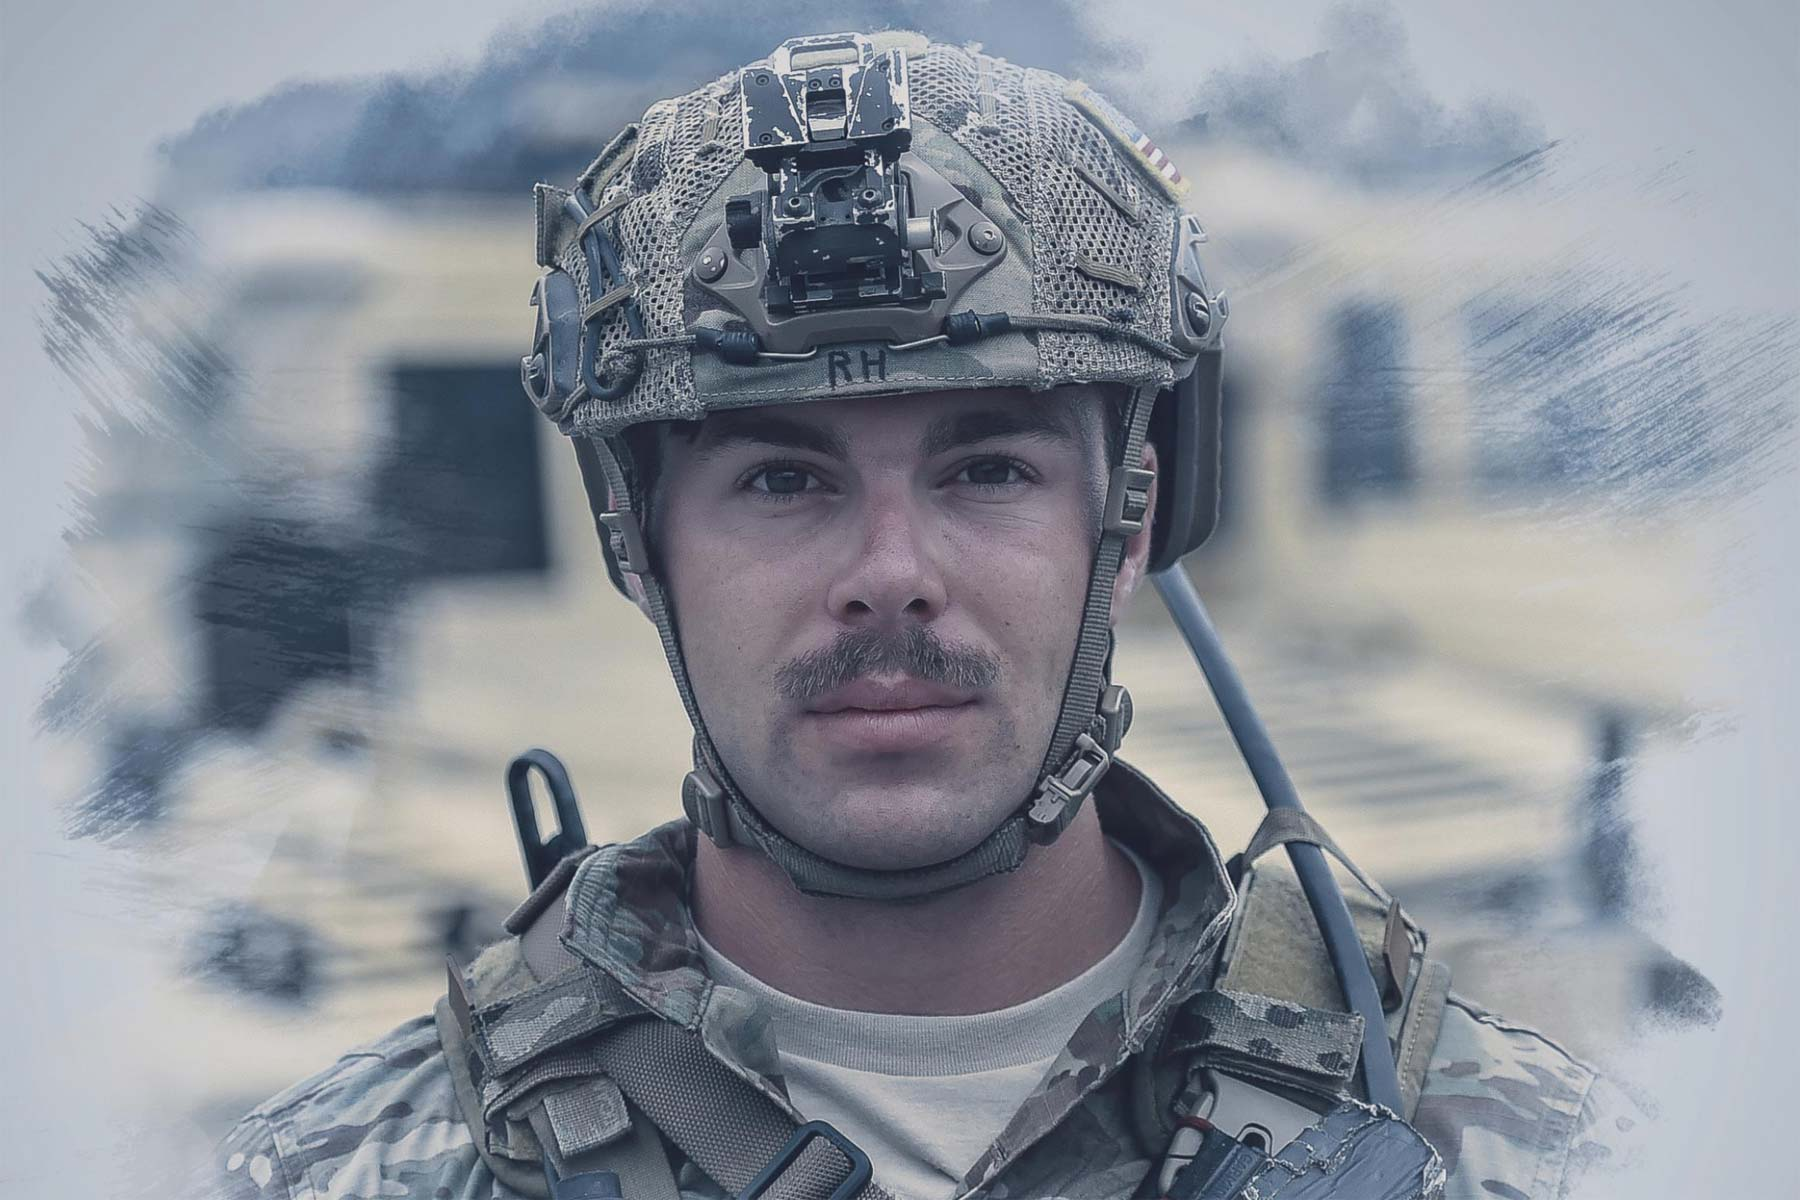 Airman Who Staved Off Ambush in Afghanistan to Receive Air Force Cross